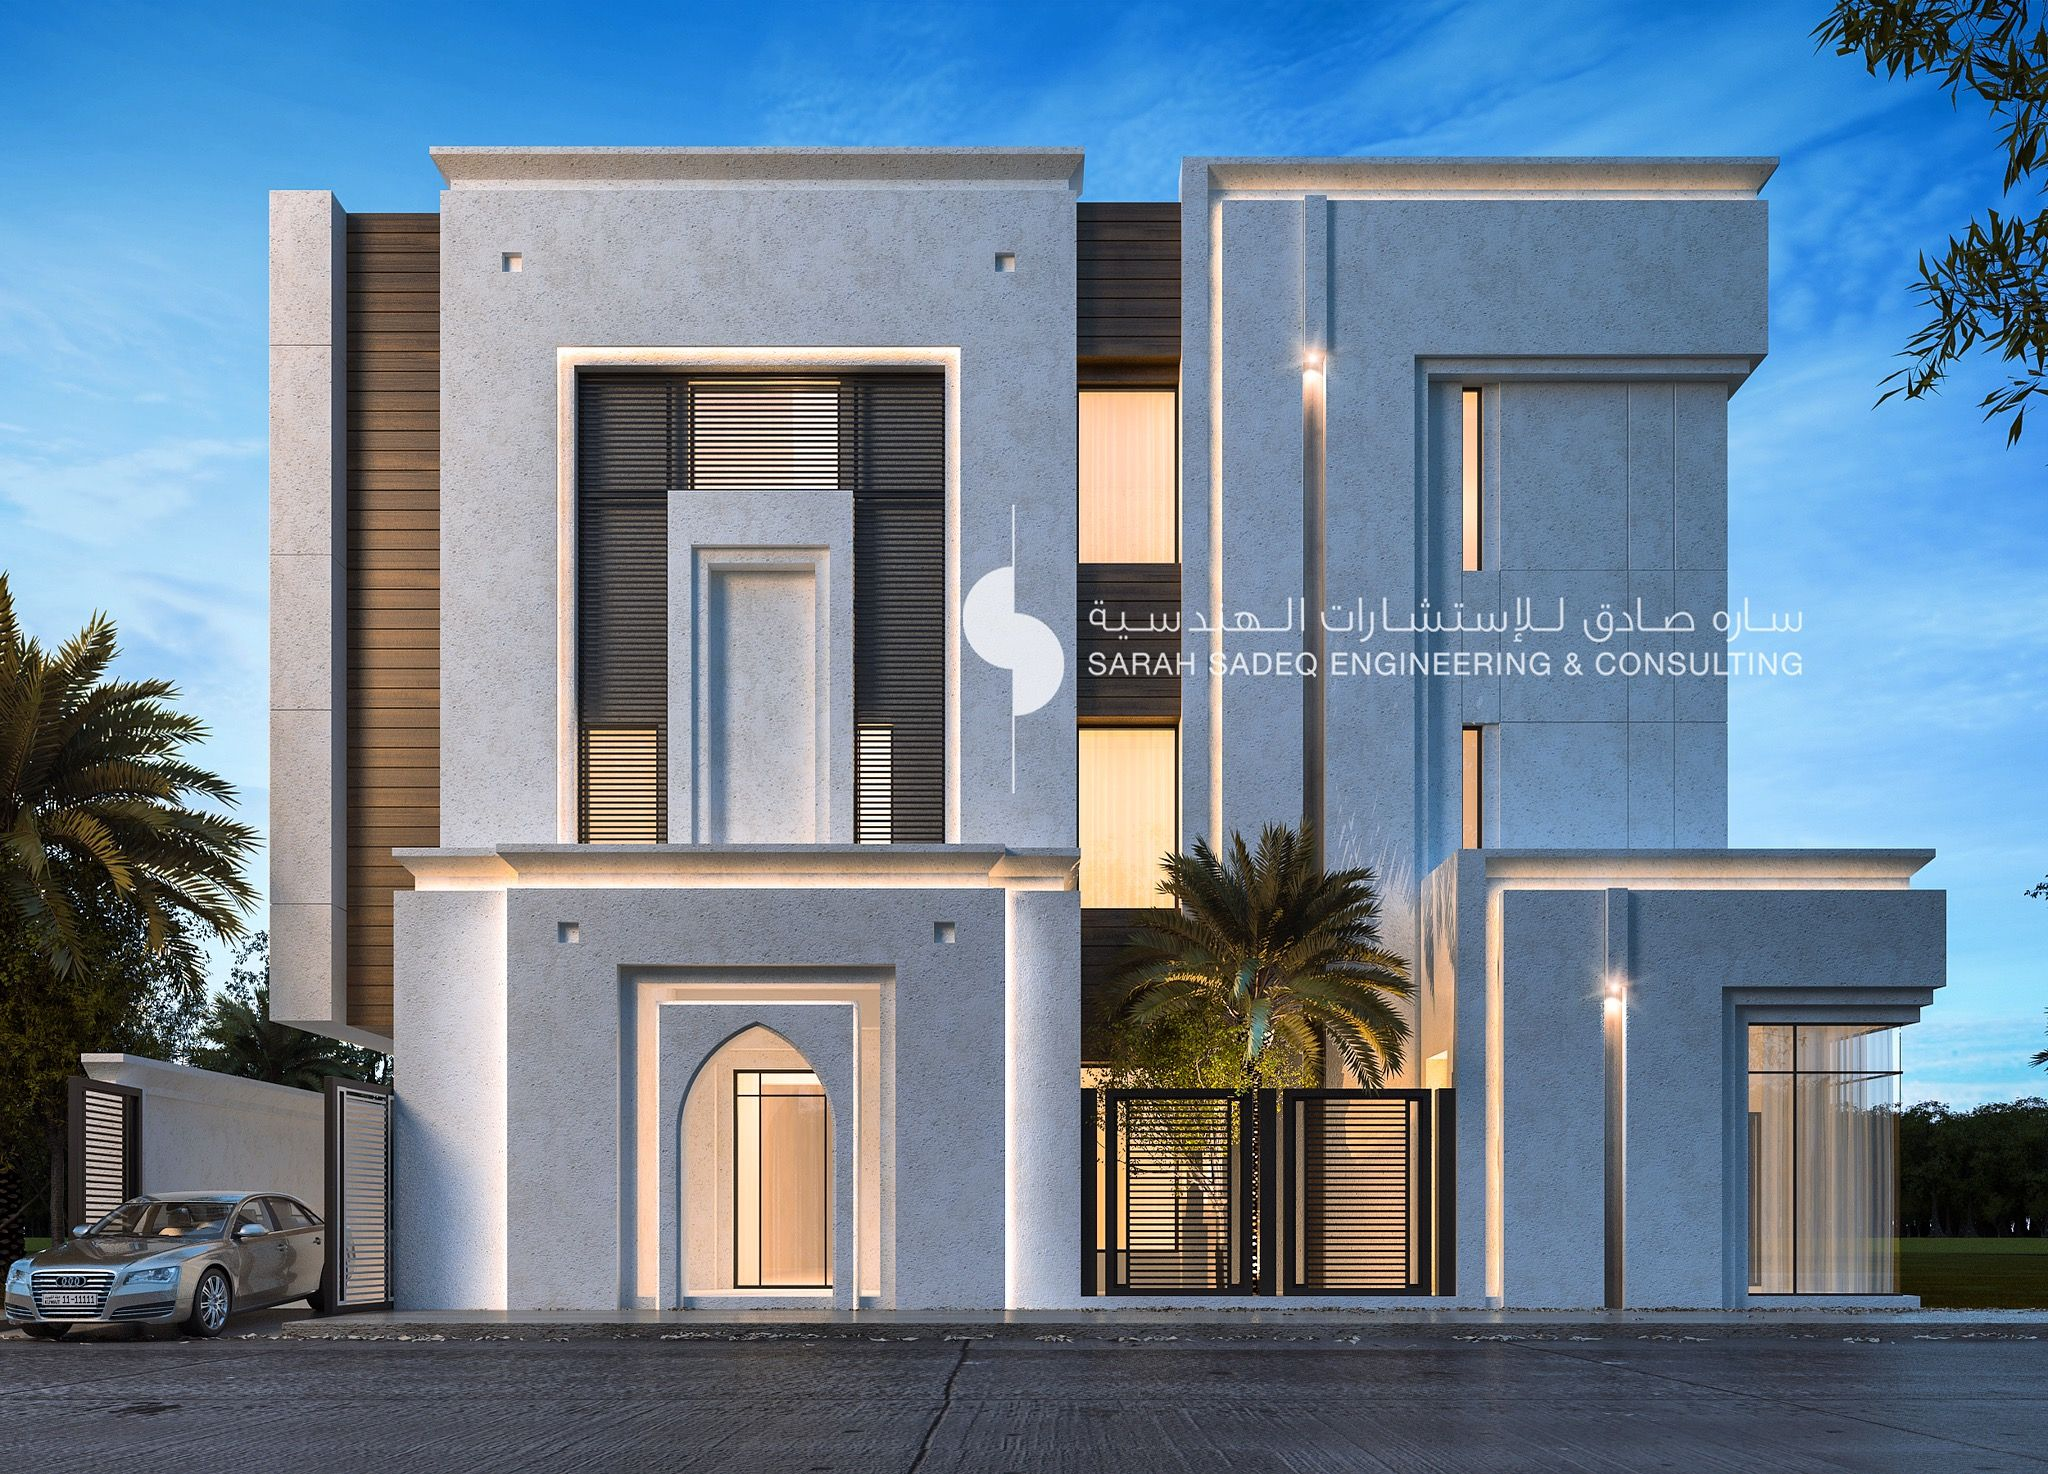 500 m private villa kuwait by Sarah